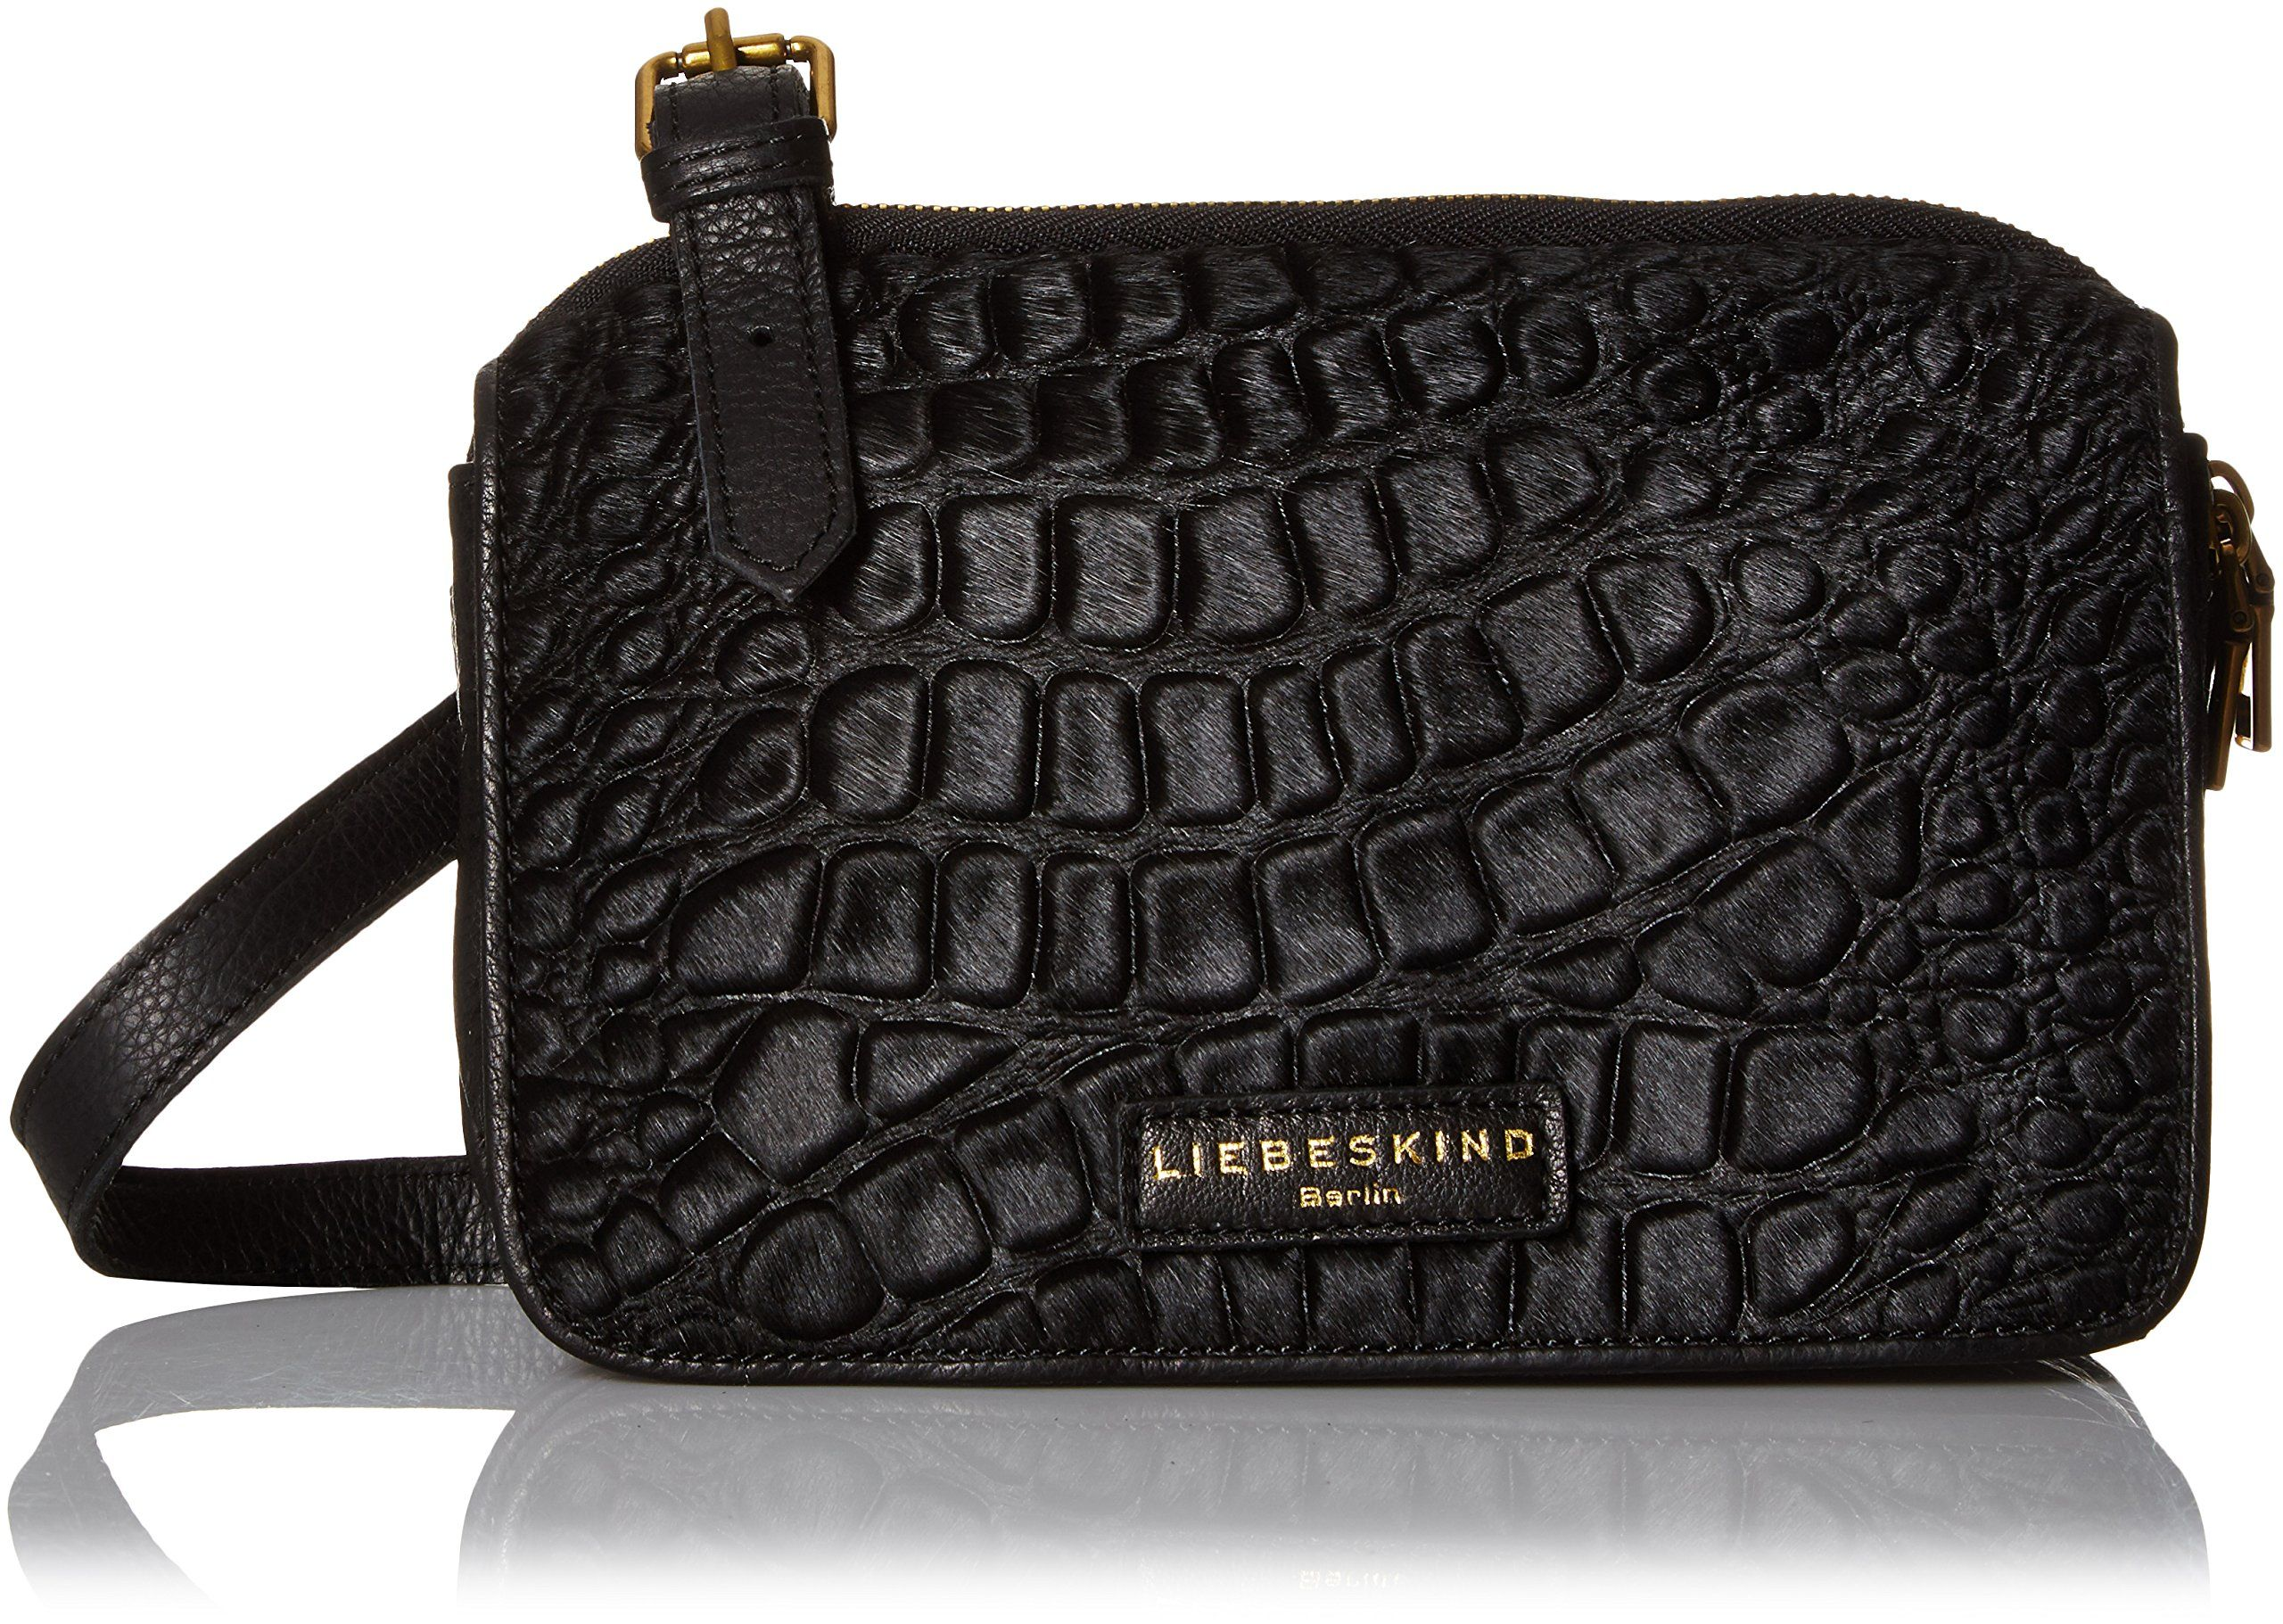 a78164fa114331 Liebeskind Berlin Maike Pony Embossed/vintage, Women's Cross-body Bag:  Amazon.co.uk: Shoes & Bags